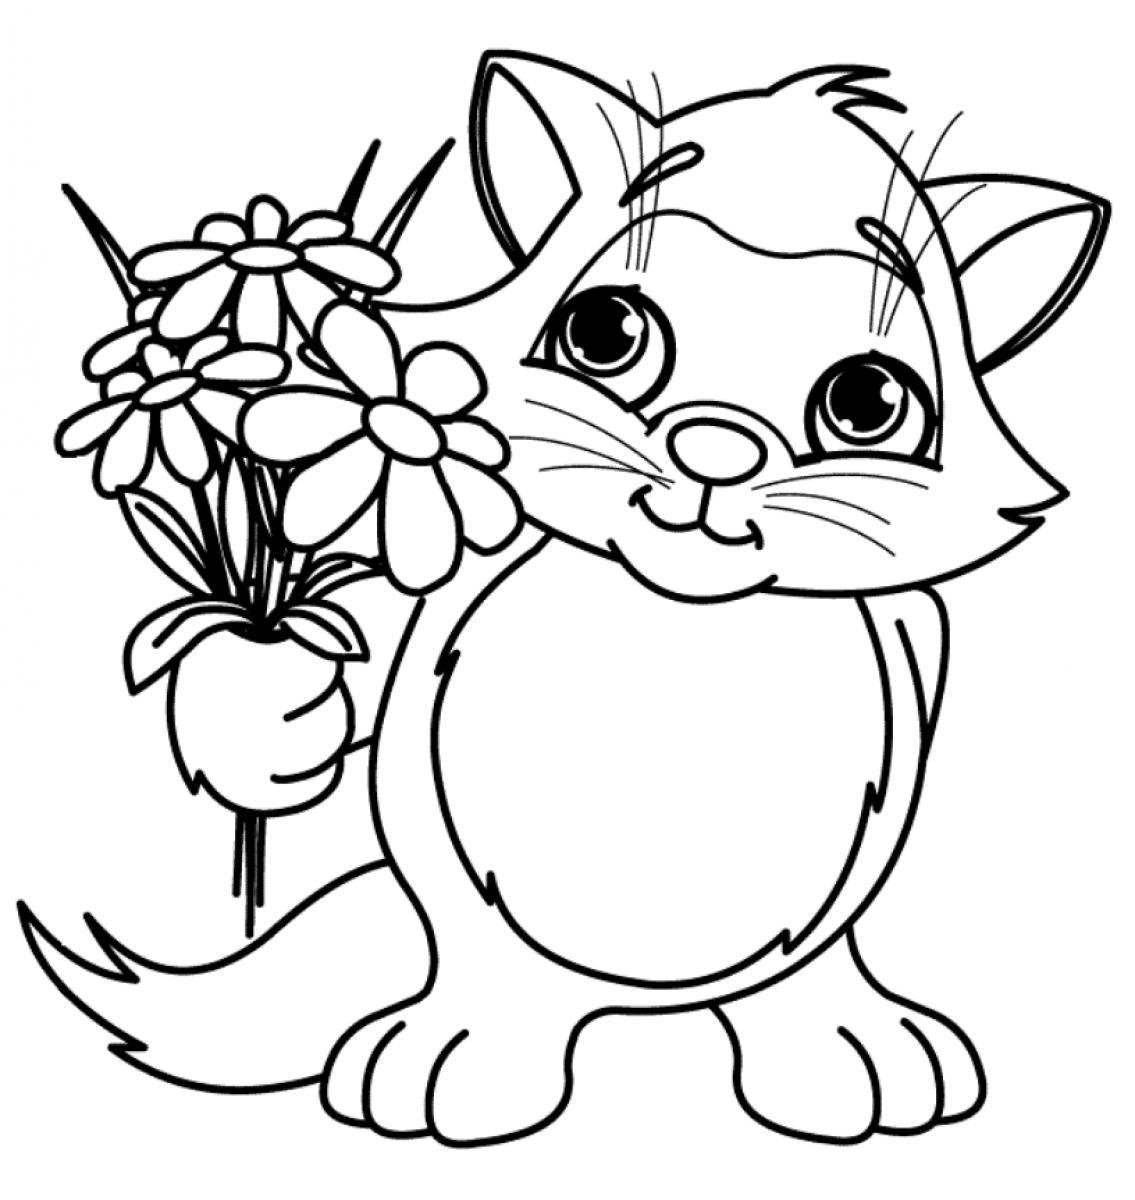 coloring picture of flower free printable flower coloring pages for kids of coloring flower picture